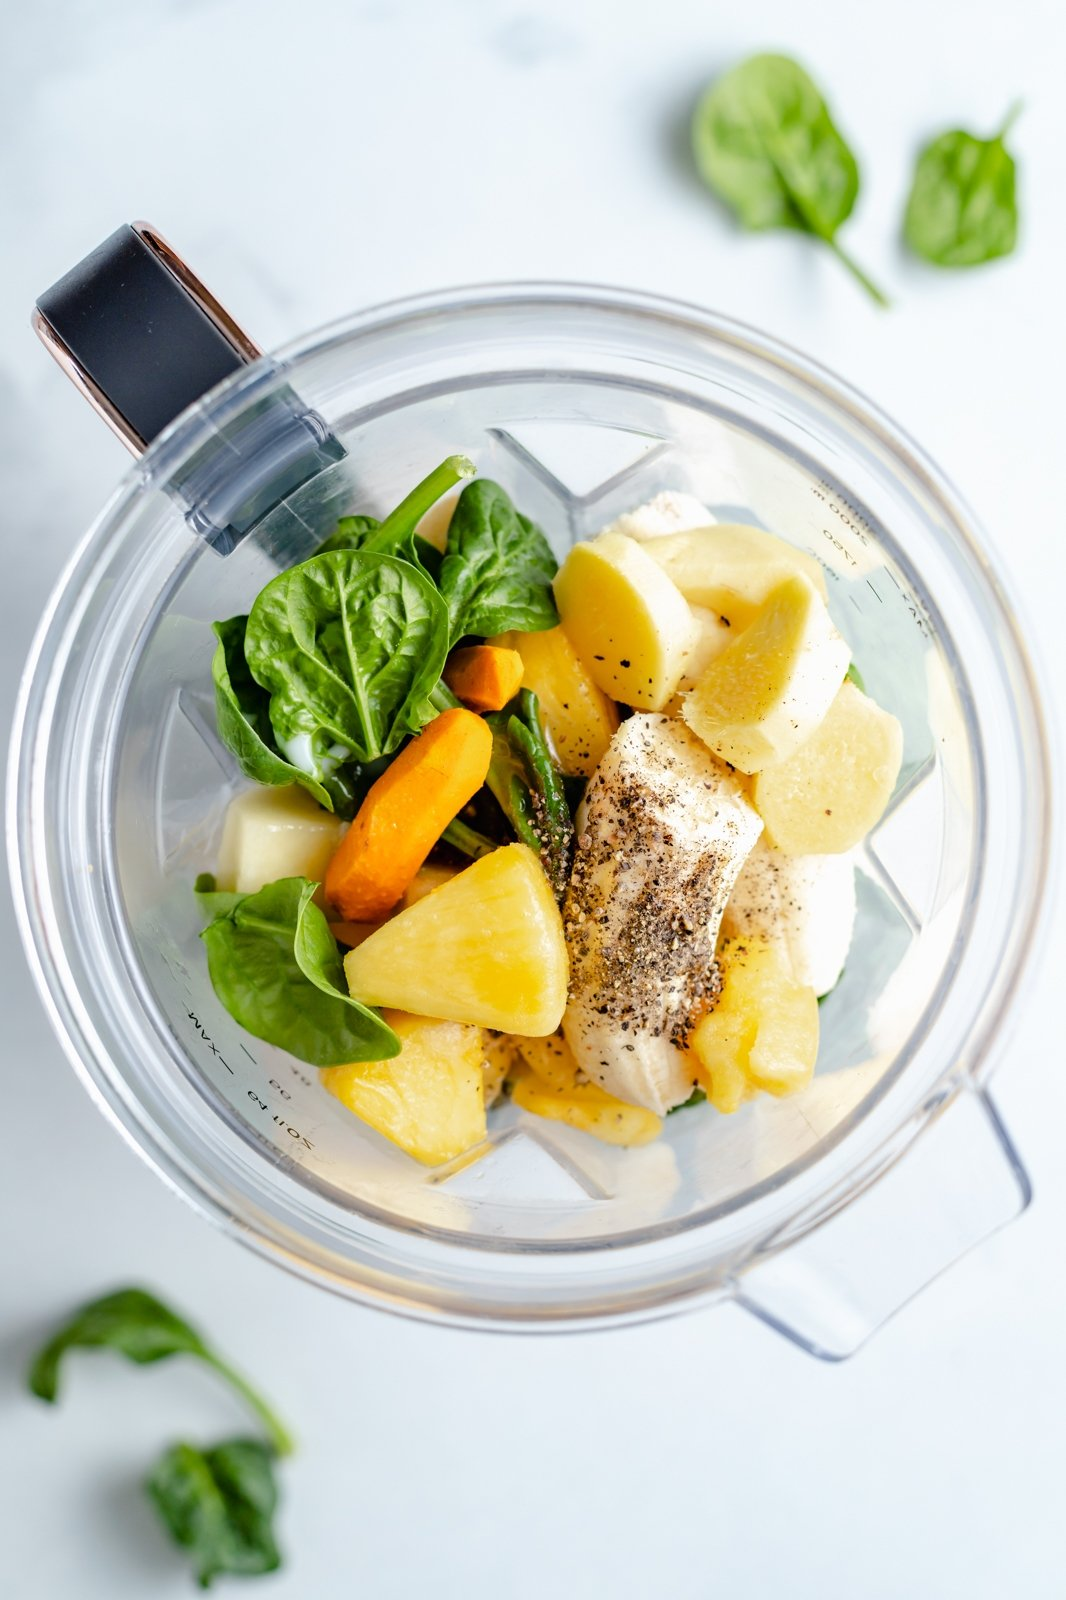 top-down view of ingredients for an immune boosting wellness drink in a blender